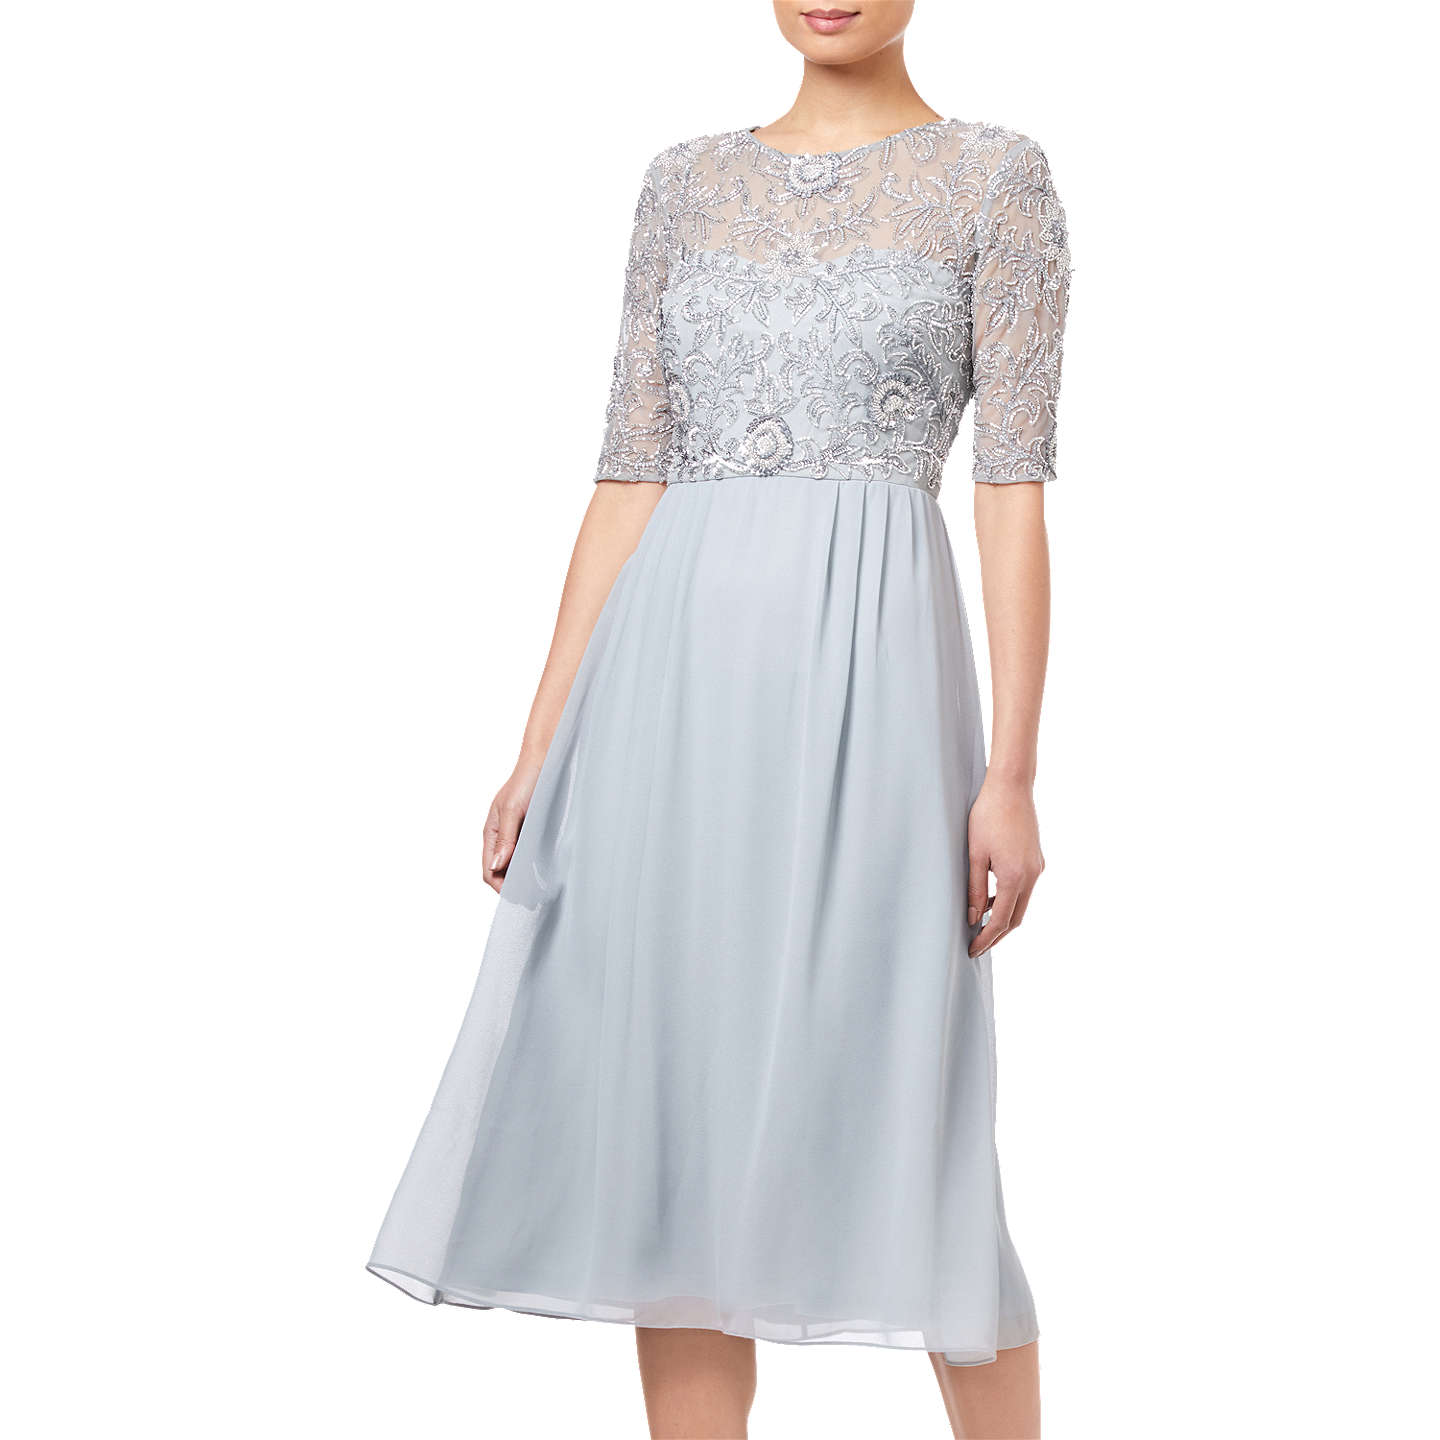 Adrianna Papell Beaded Midi Dress, Blue Mist at John Lewis